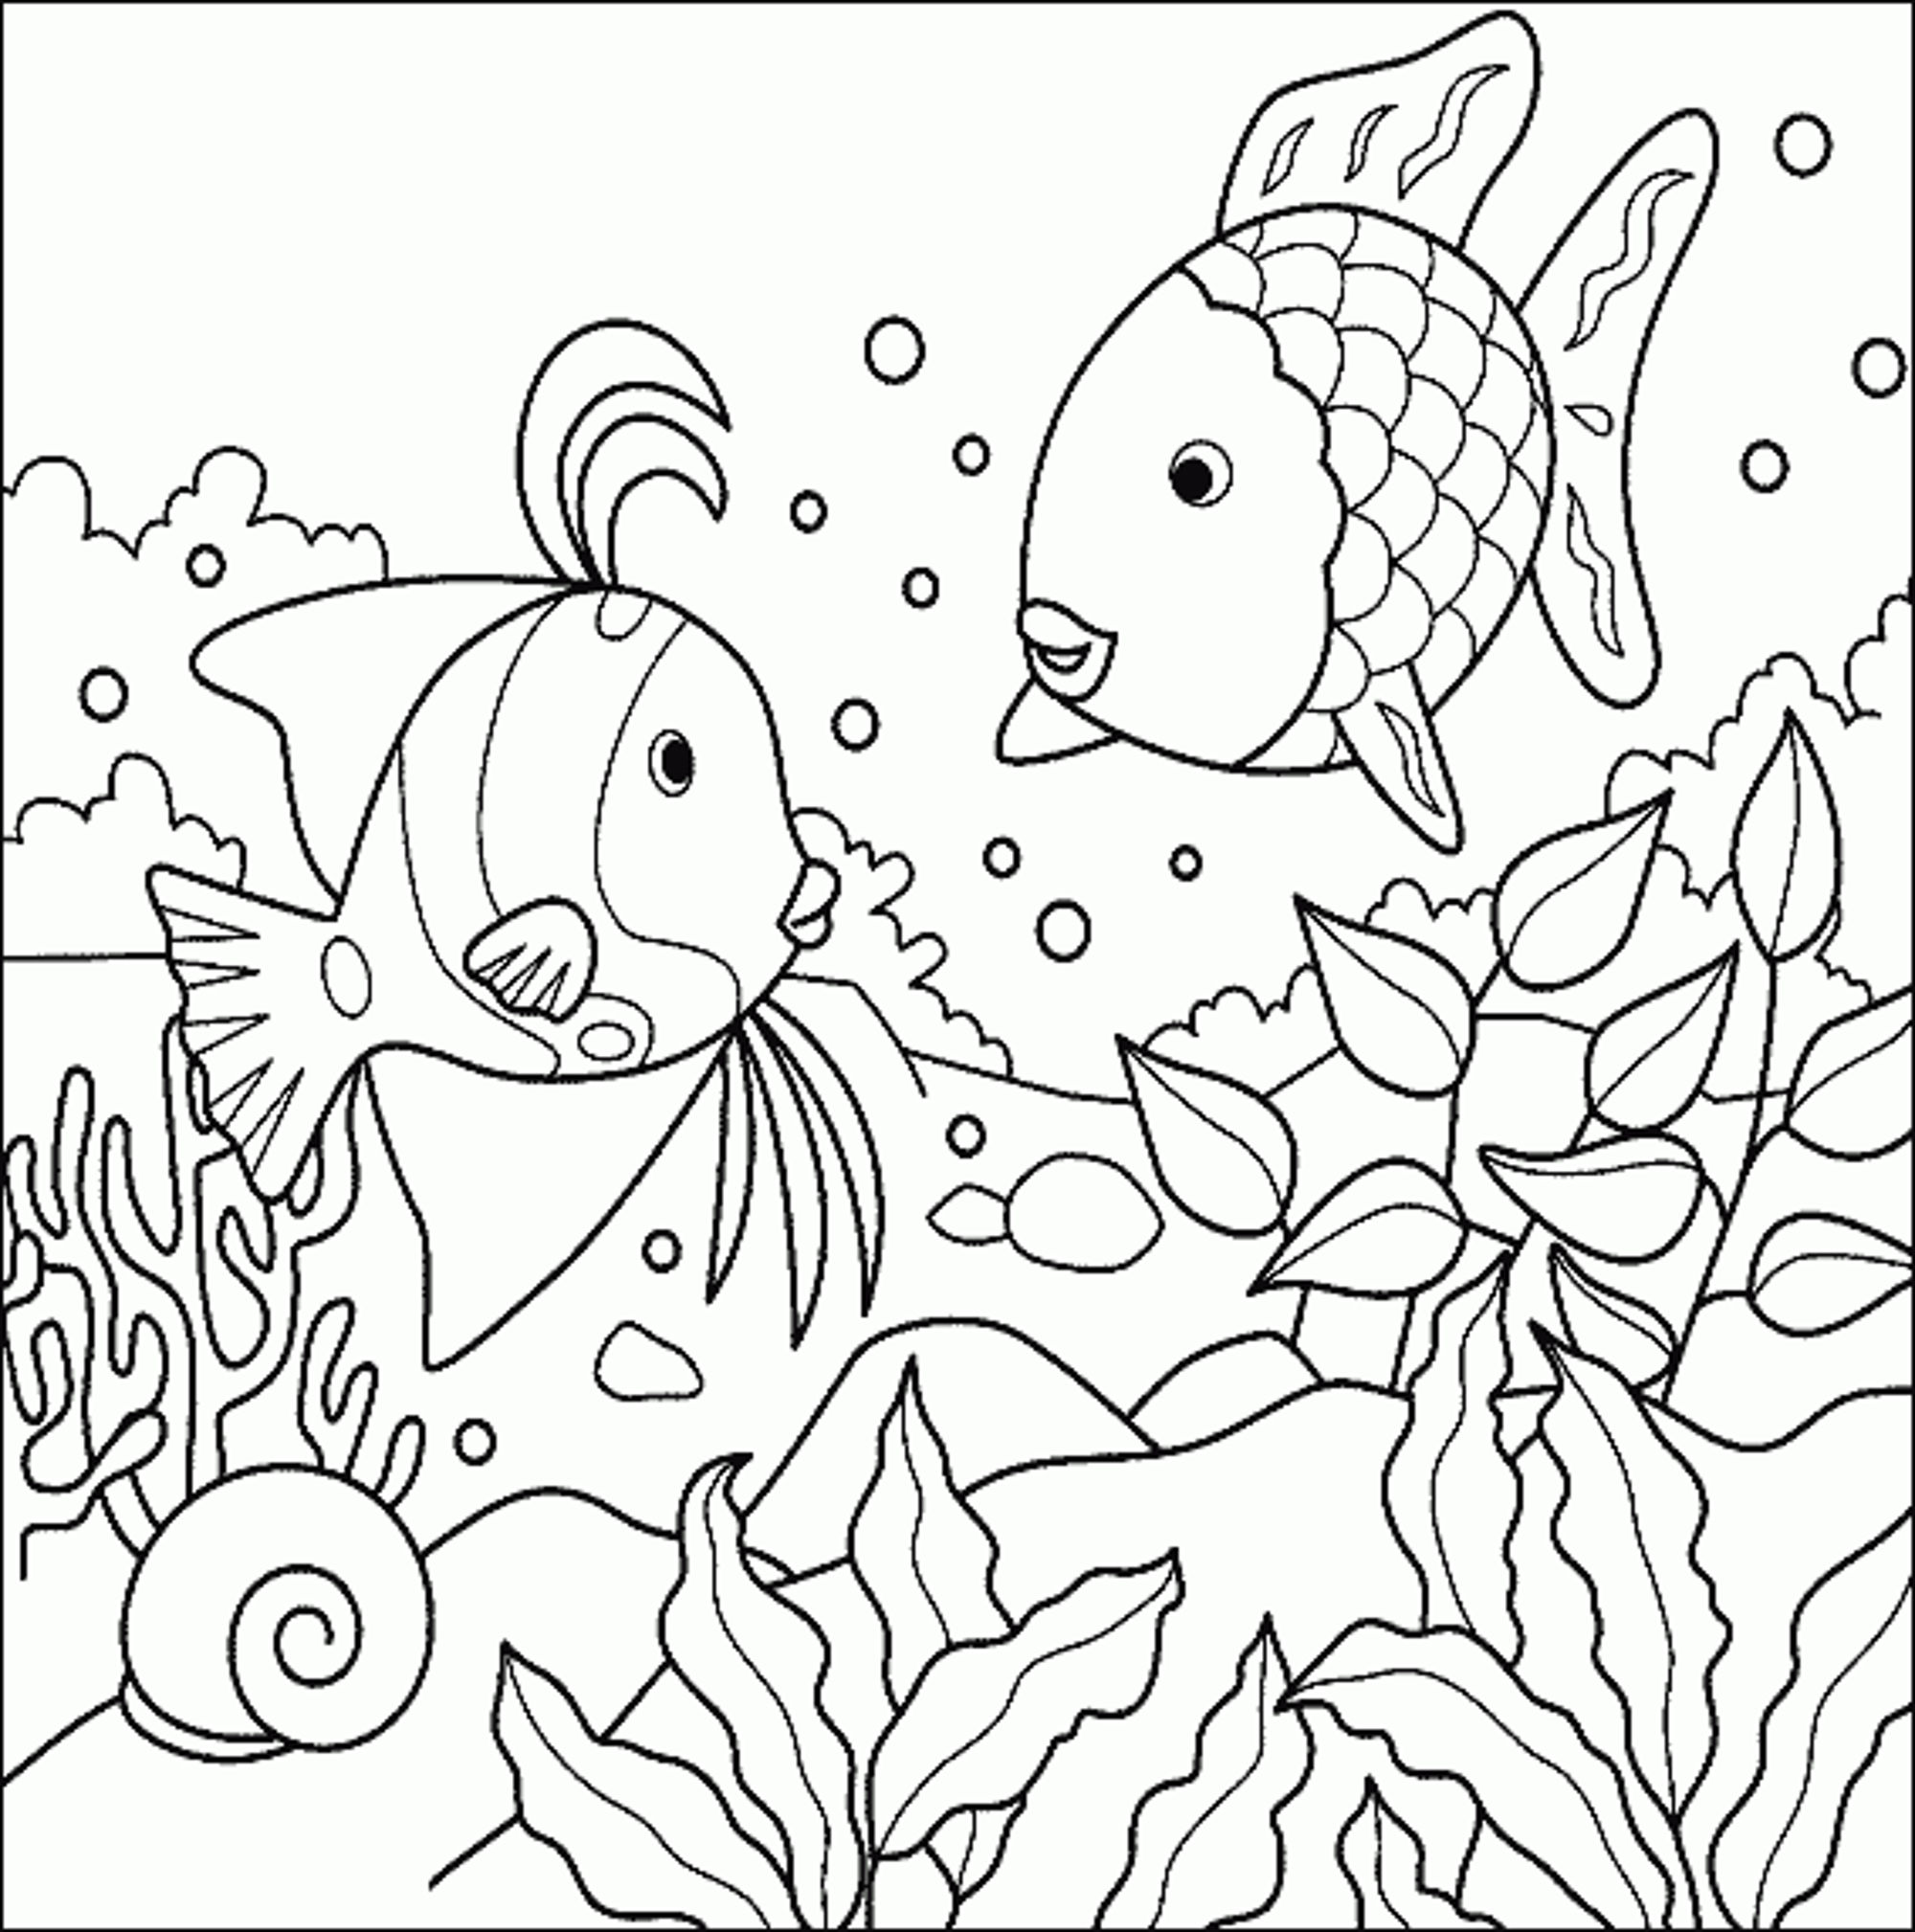 Tropical Fish Coloring Page Bestappsforkids